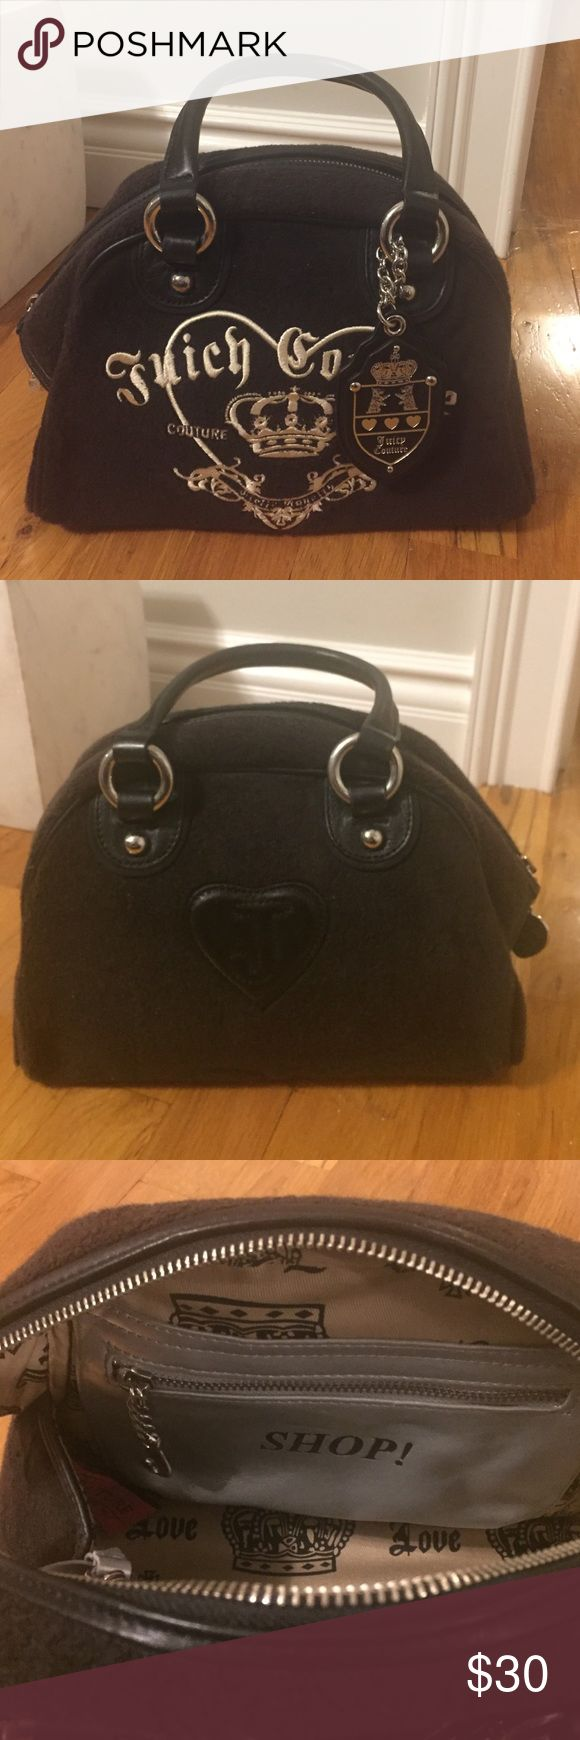 Juicy Couture handbag Juicy Couture handbag in black. It has an inside zipper and 2 pockets with a small mirror. Juicy Couture Bags Satchels